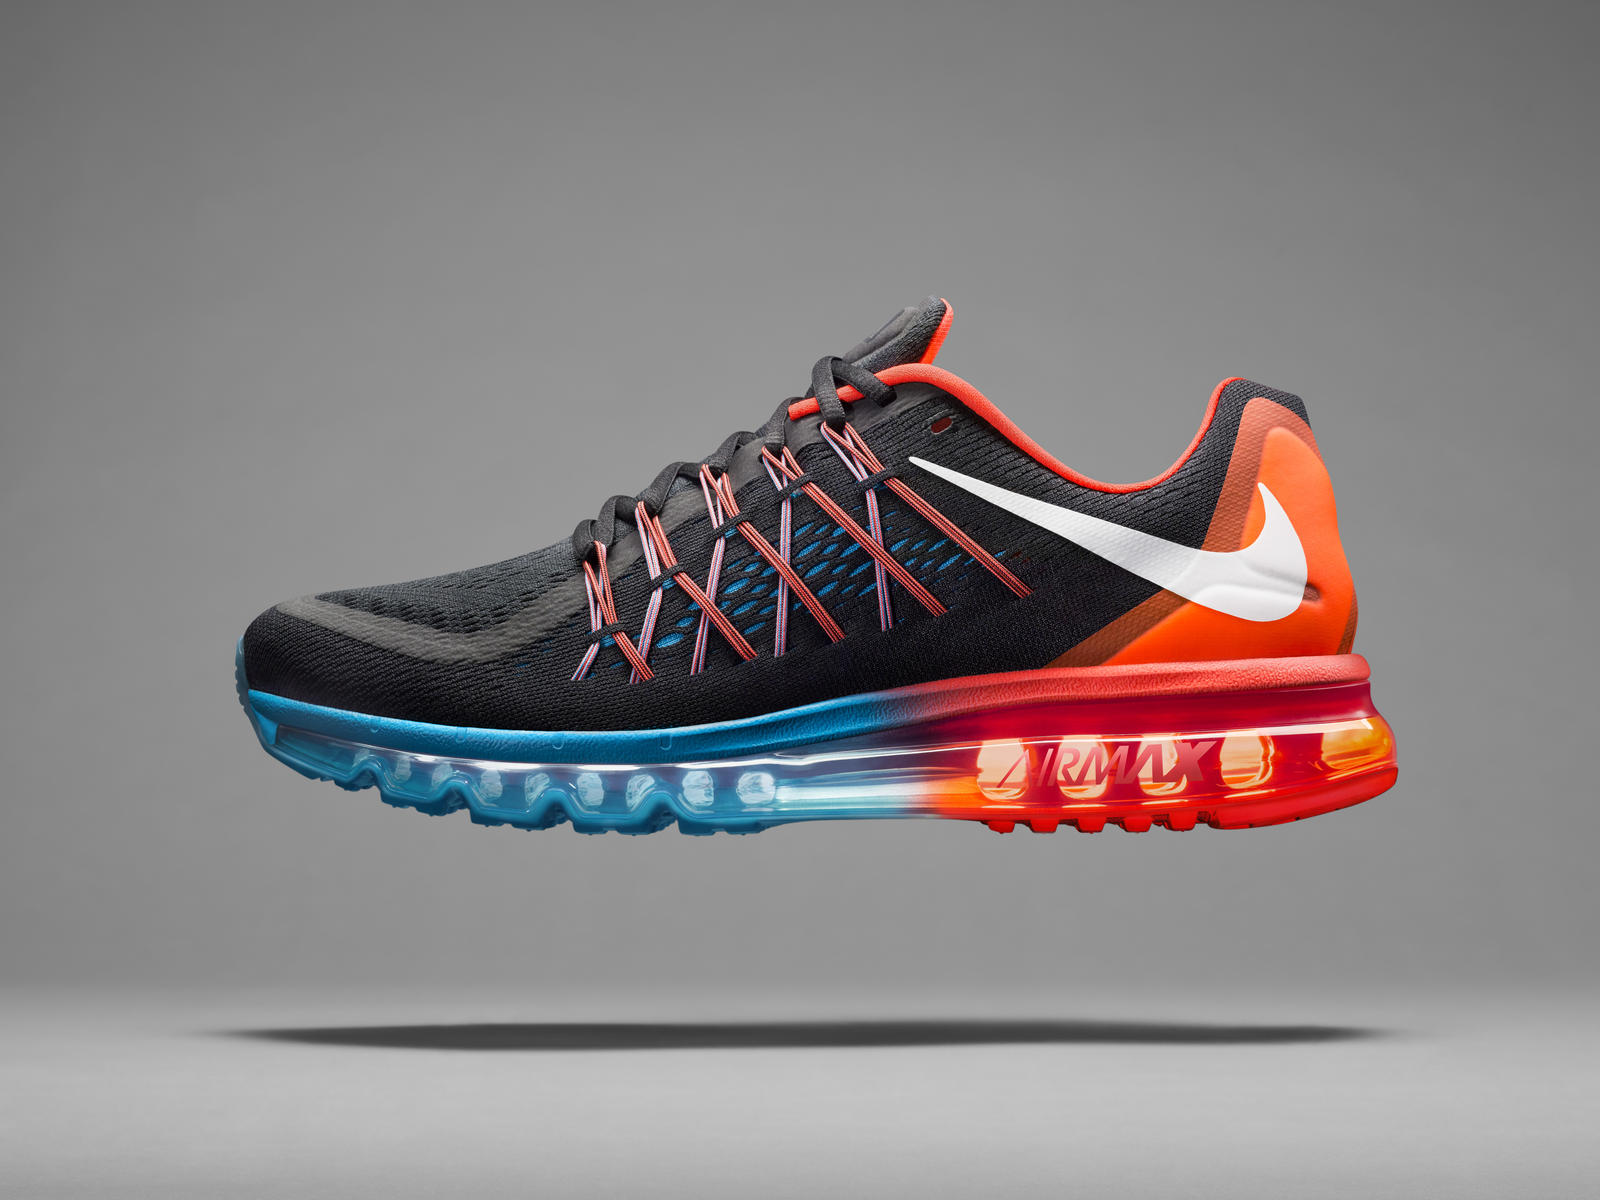 nouveau style ac54f cc7d3 Masters of Max: The Air Max Icons - Nike News